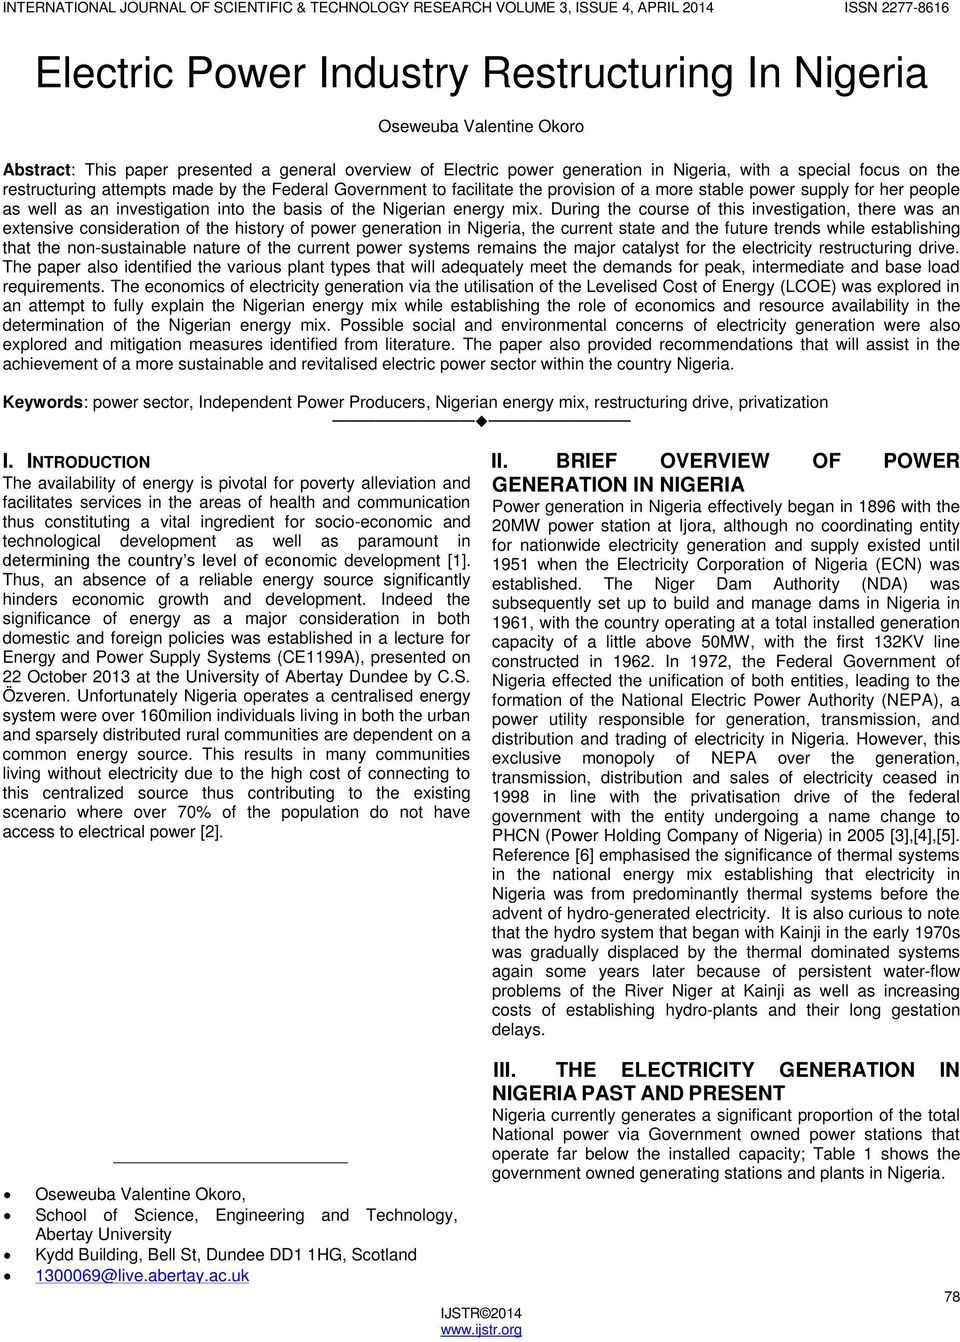 Electric Power Industry Restructuring In Nigeria - PDF